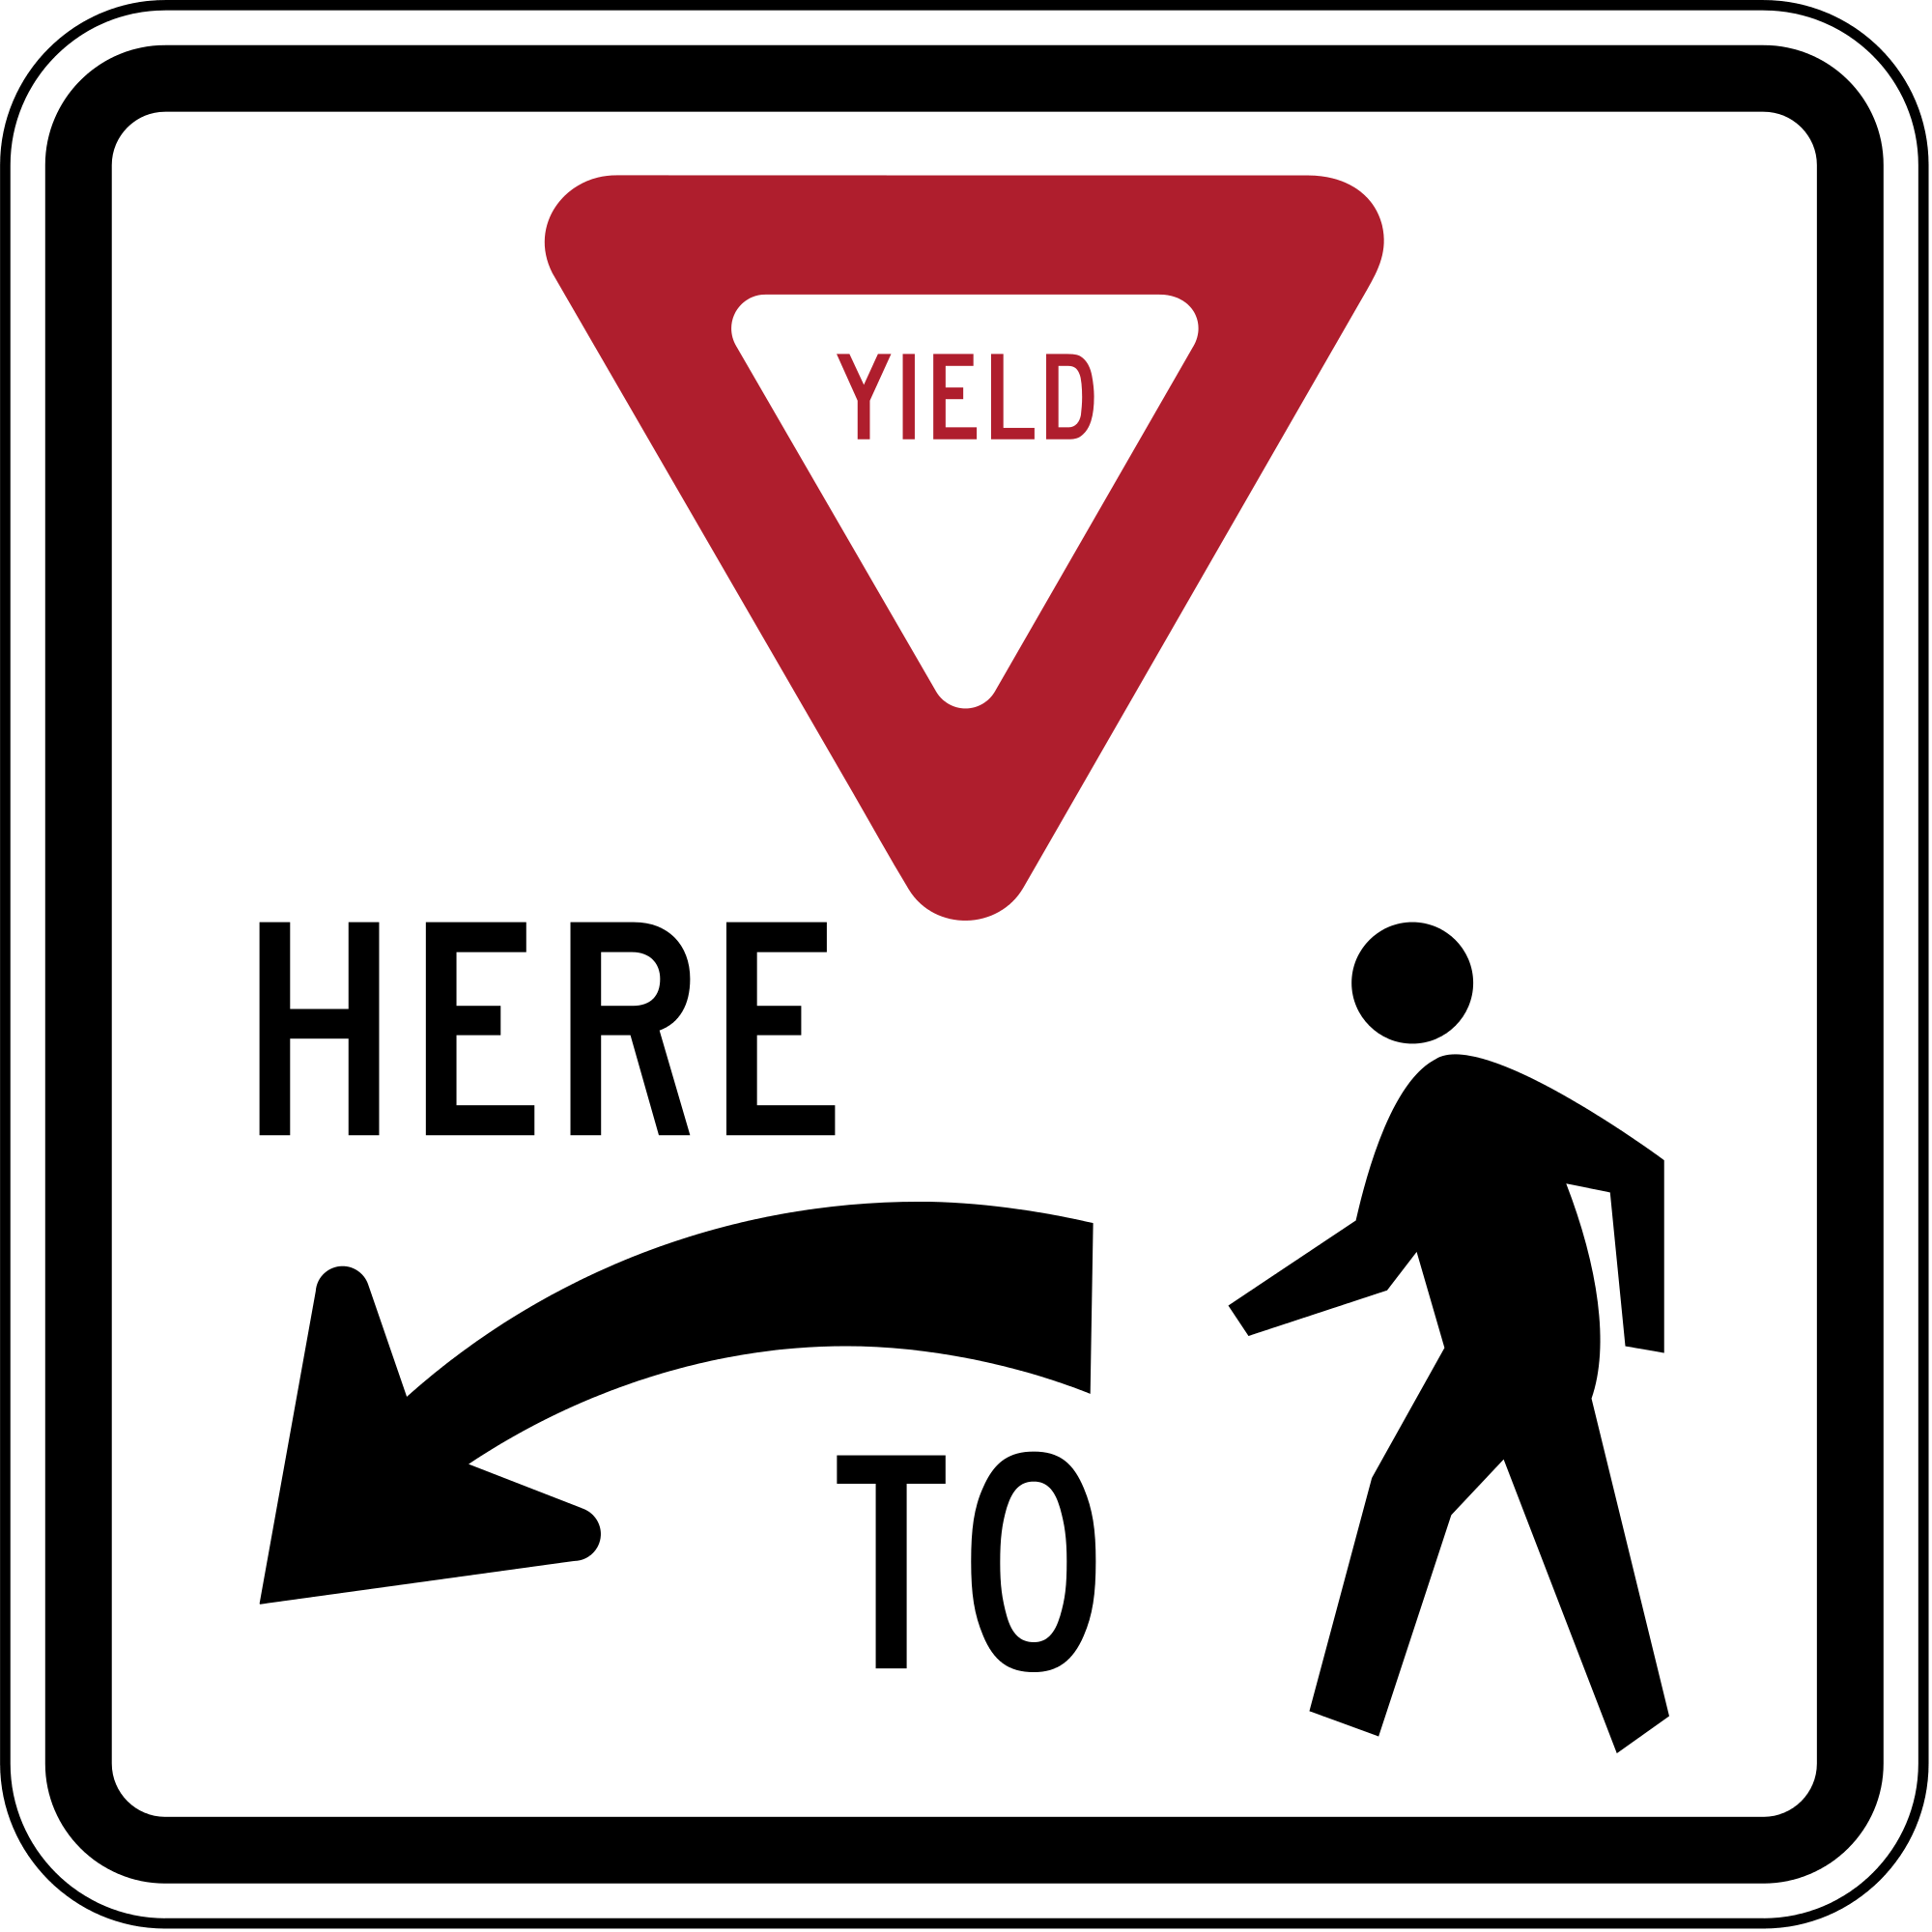 R1-5L Yield Here To Pedestrians Regulatory Sign